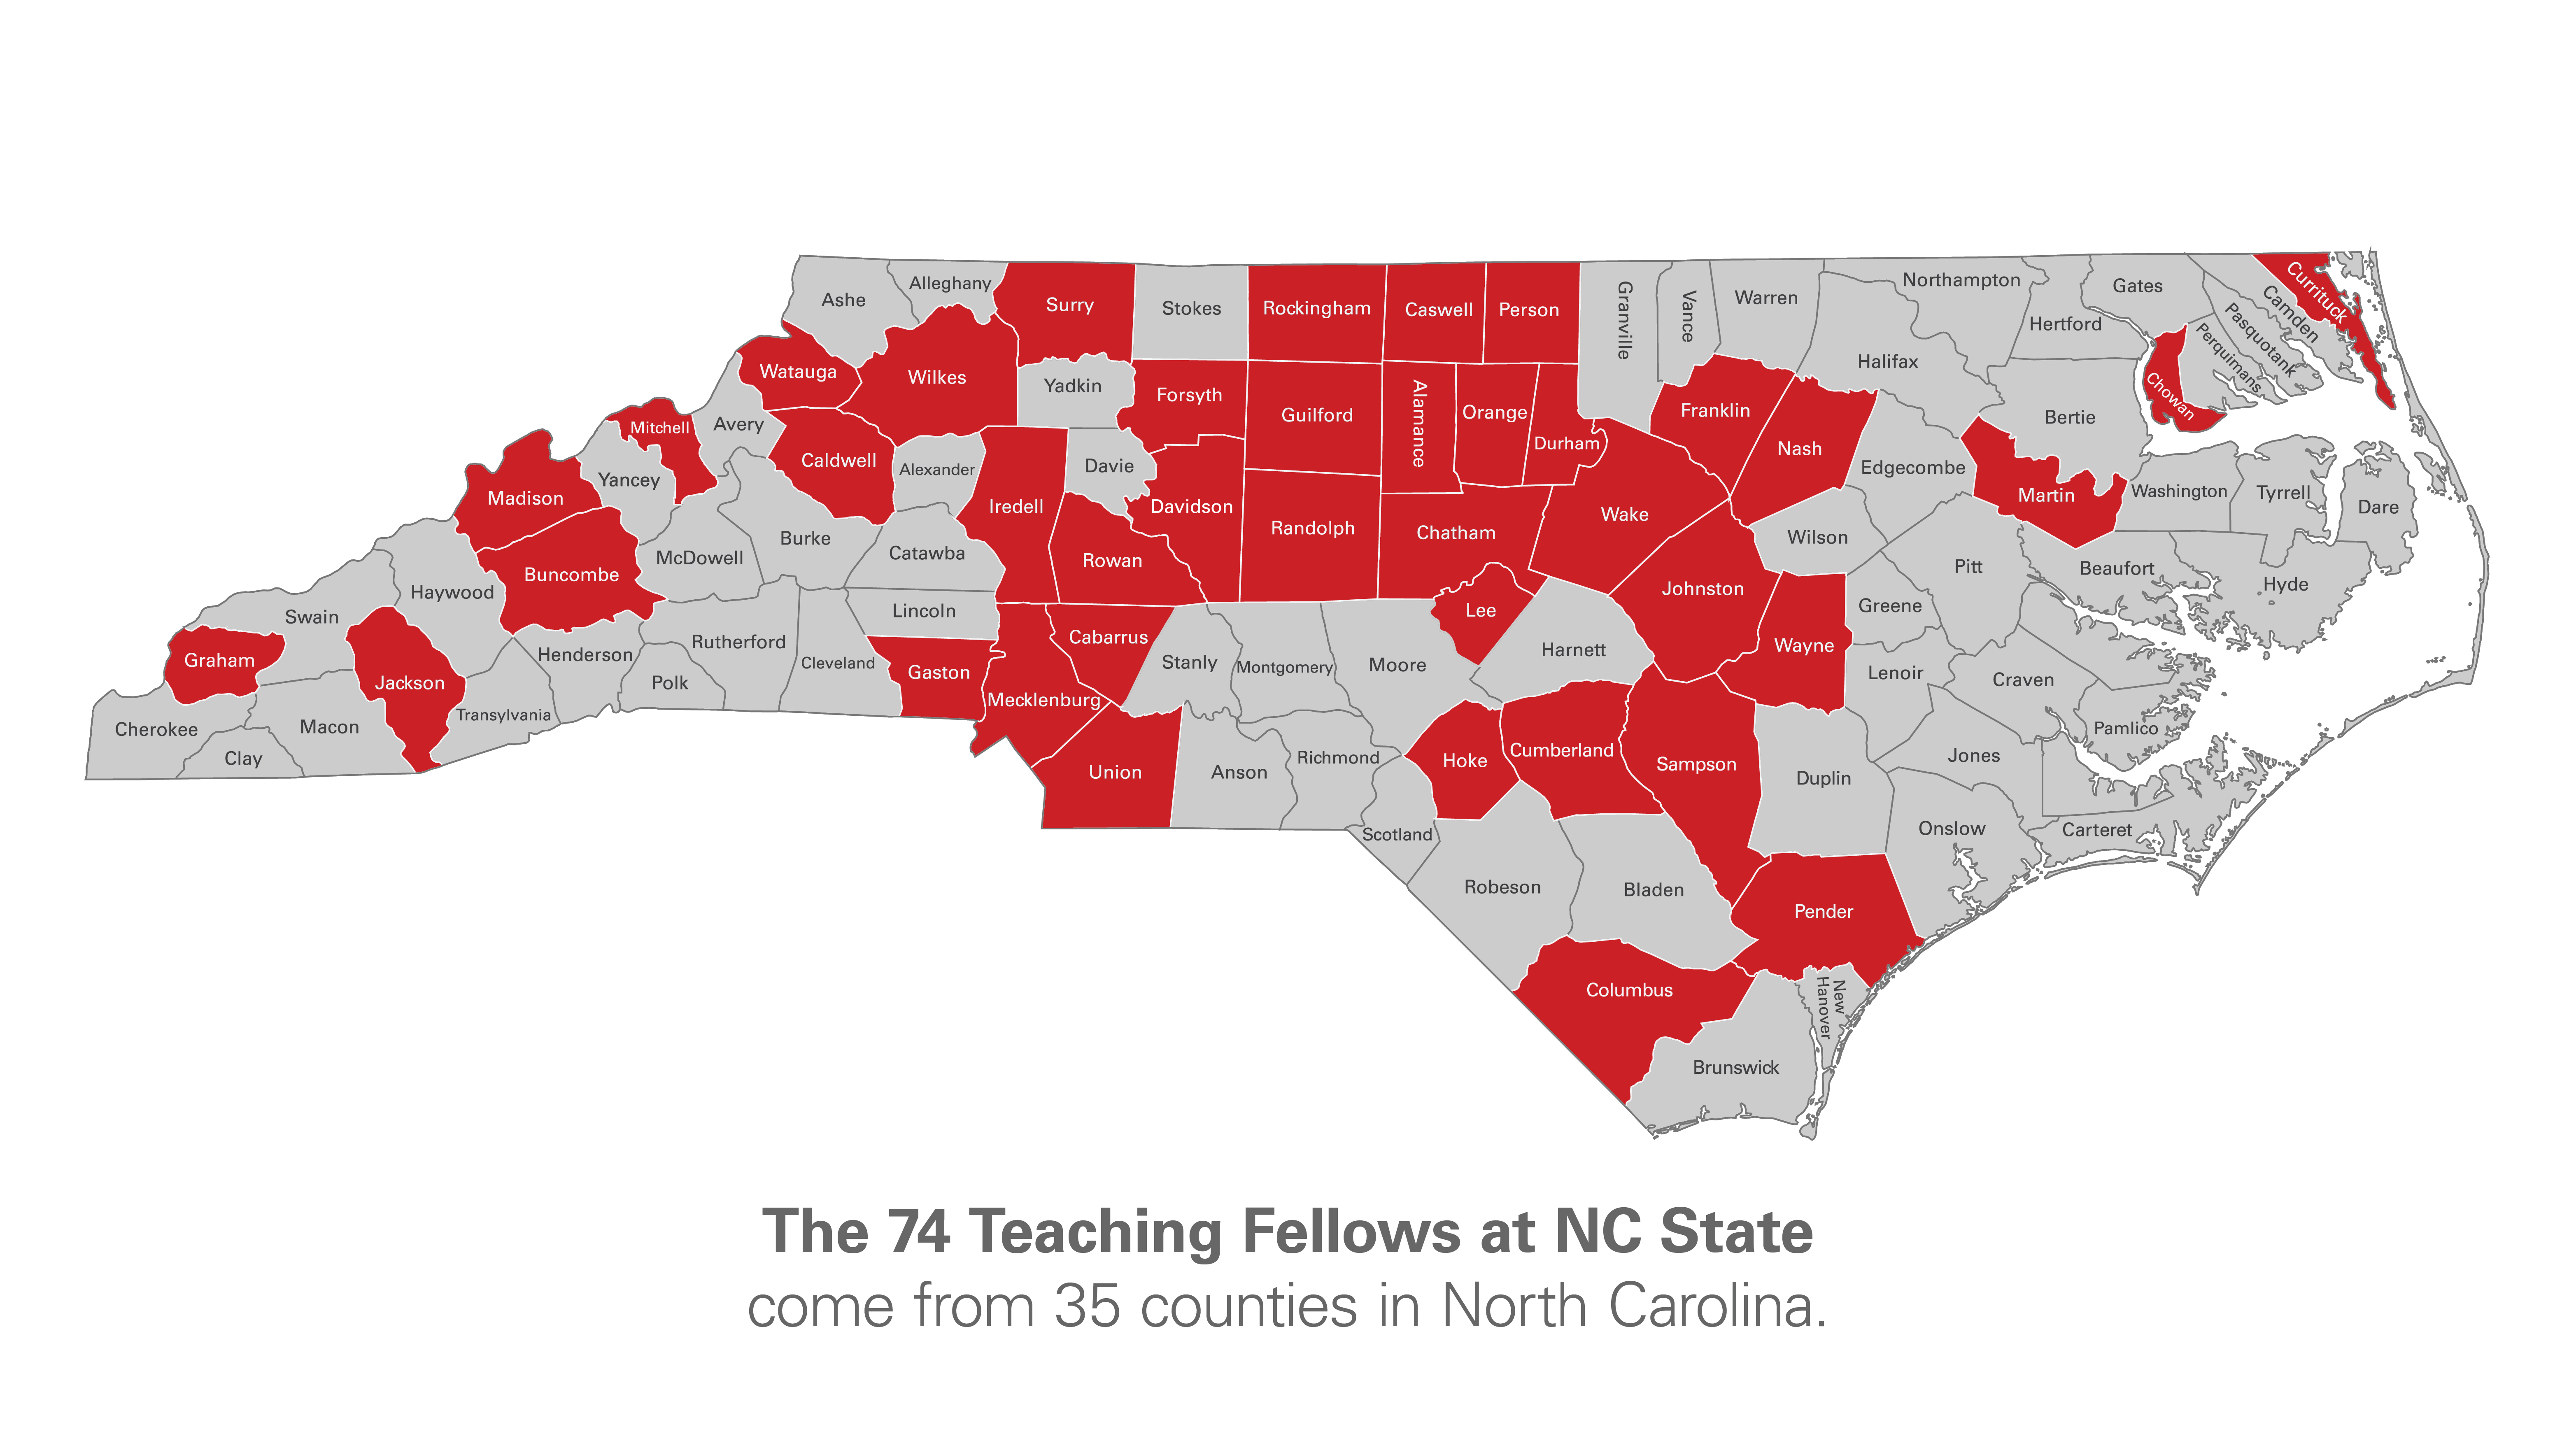 The 74 Teaching Fellows at NC State come from 35 counties in North Carolina.